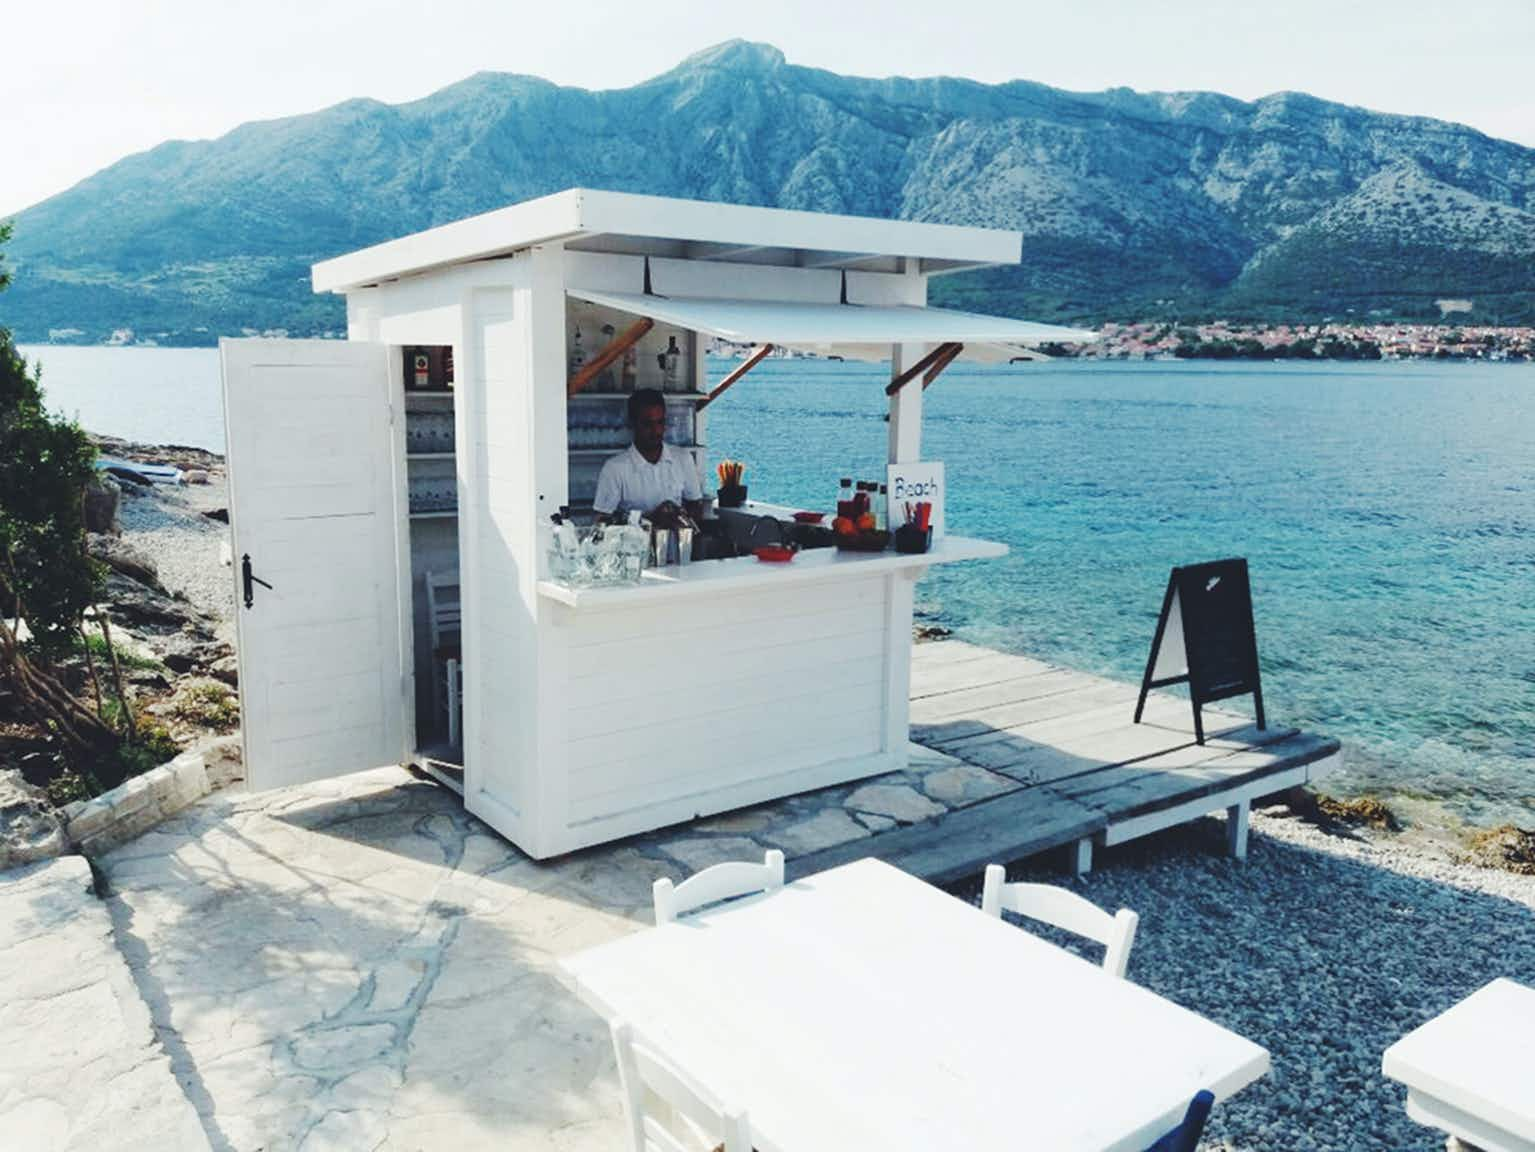 Who wouldn't want to be at this beach bar on a small island off the Croatian coast right now?